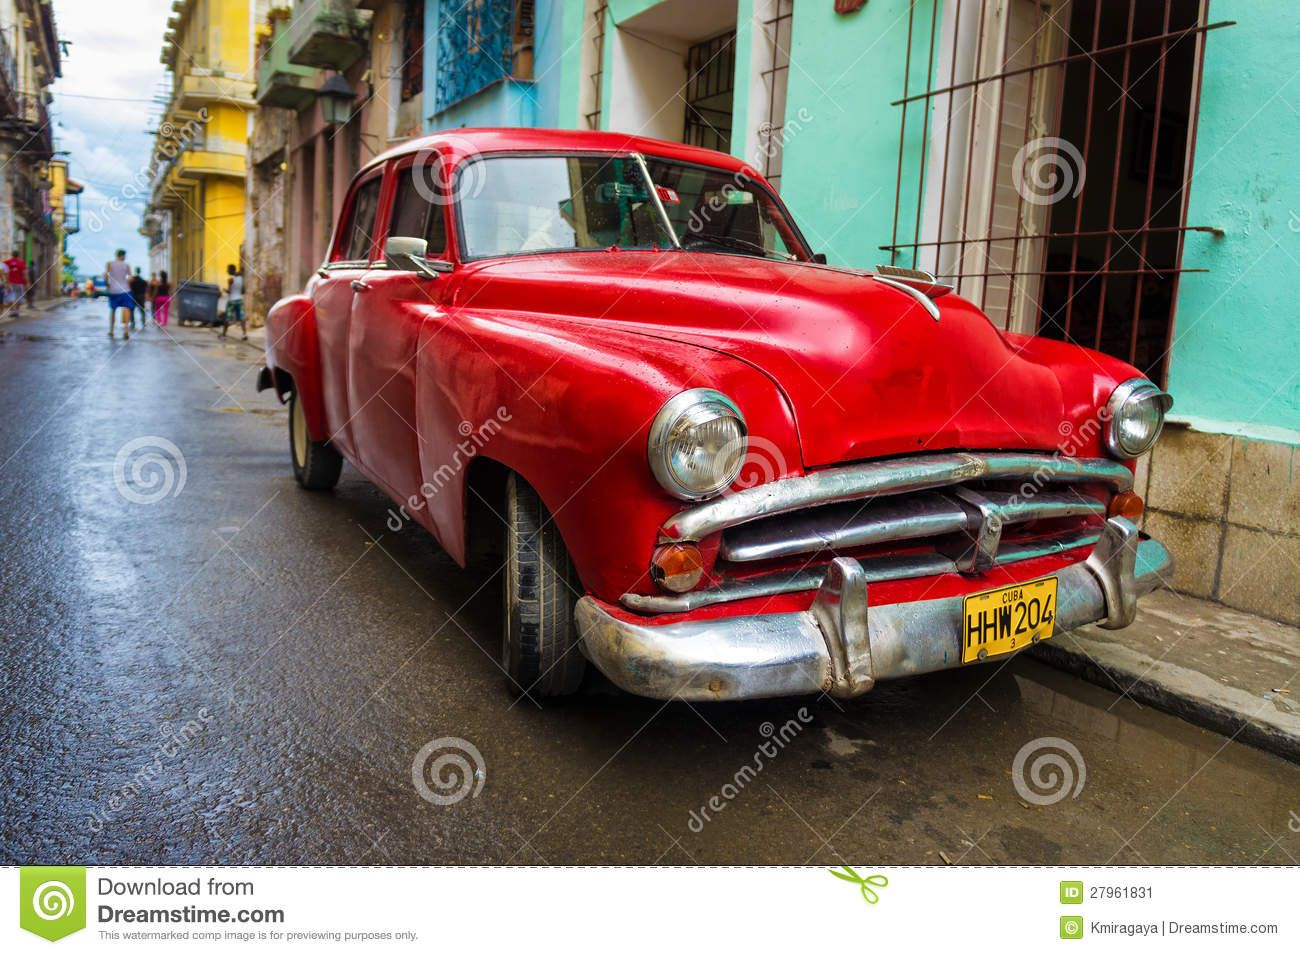 old time cars | Old classic car in a shabby neighborhood in Havana ...